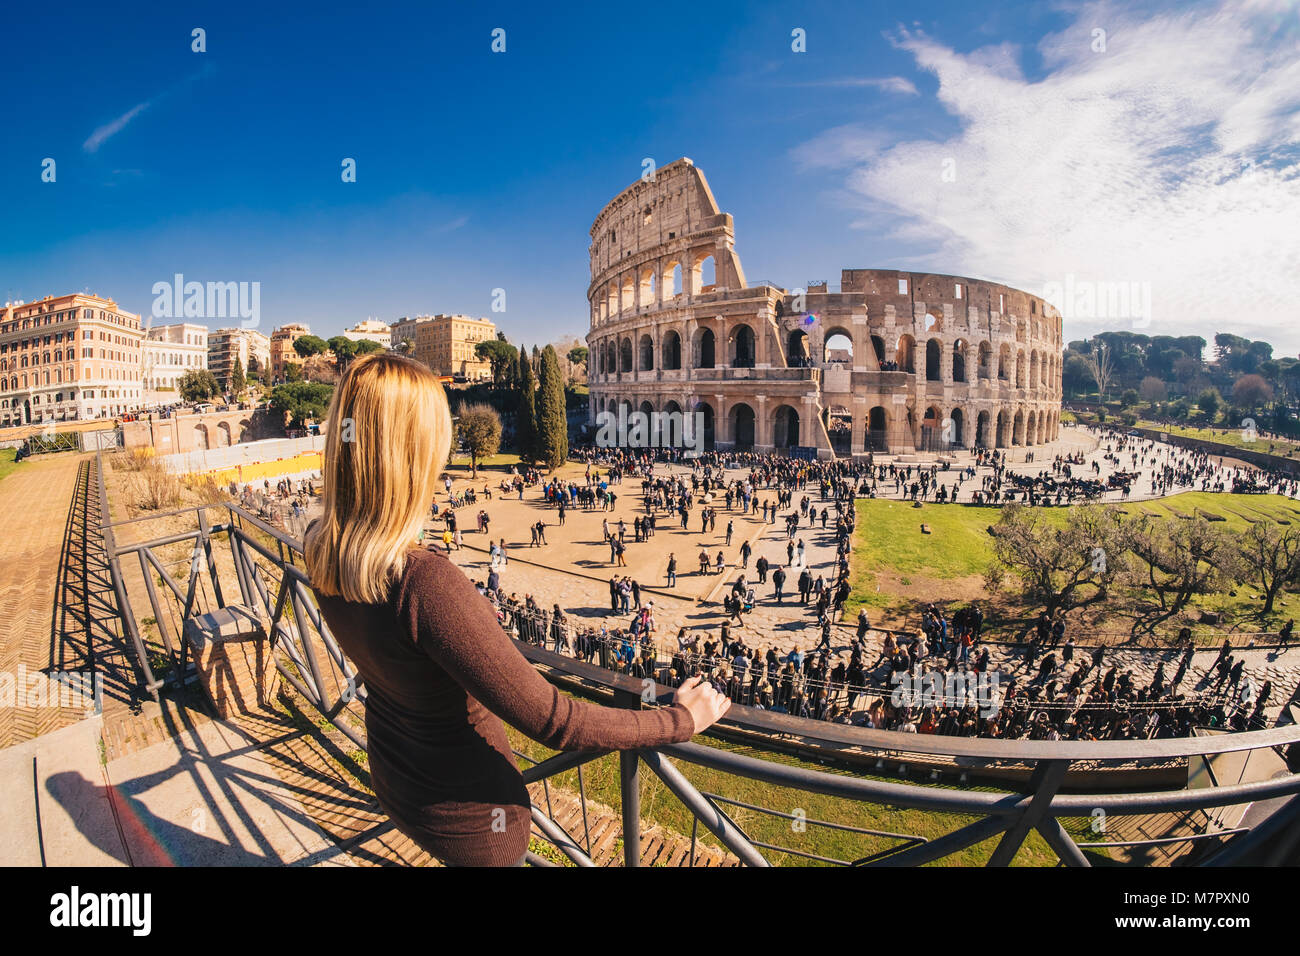 Female traveler watching over the Colosseum in Rome, Italy - Stock Image